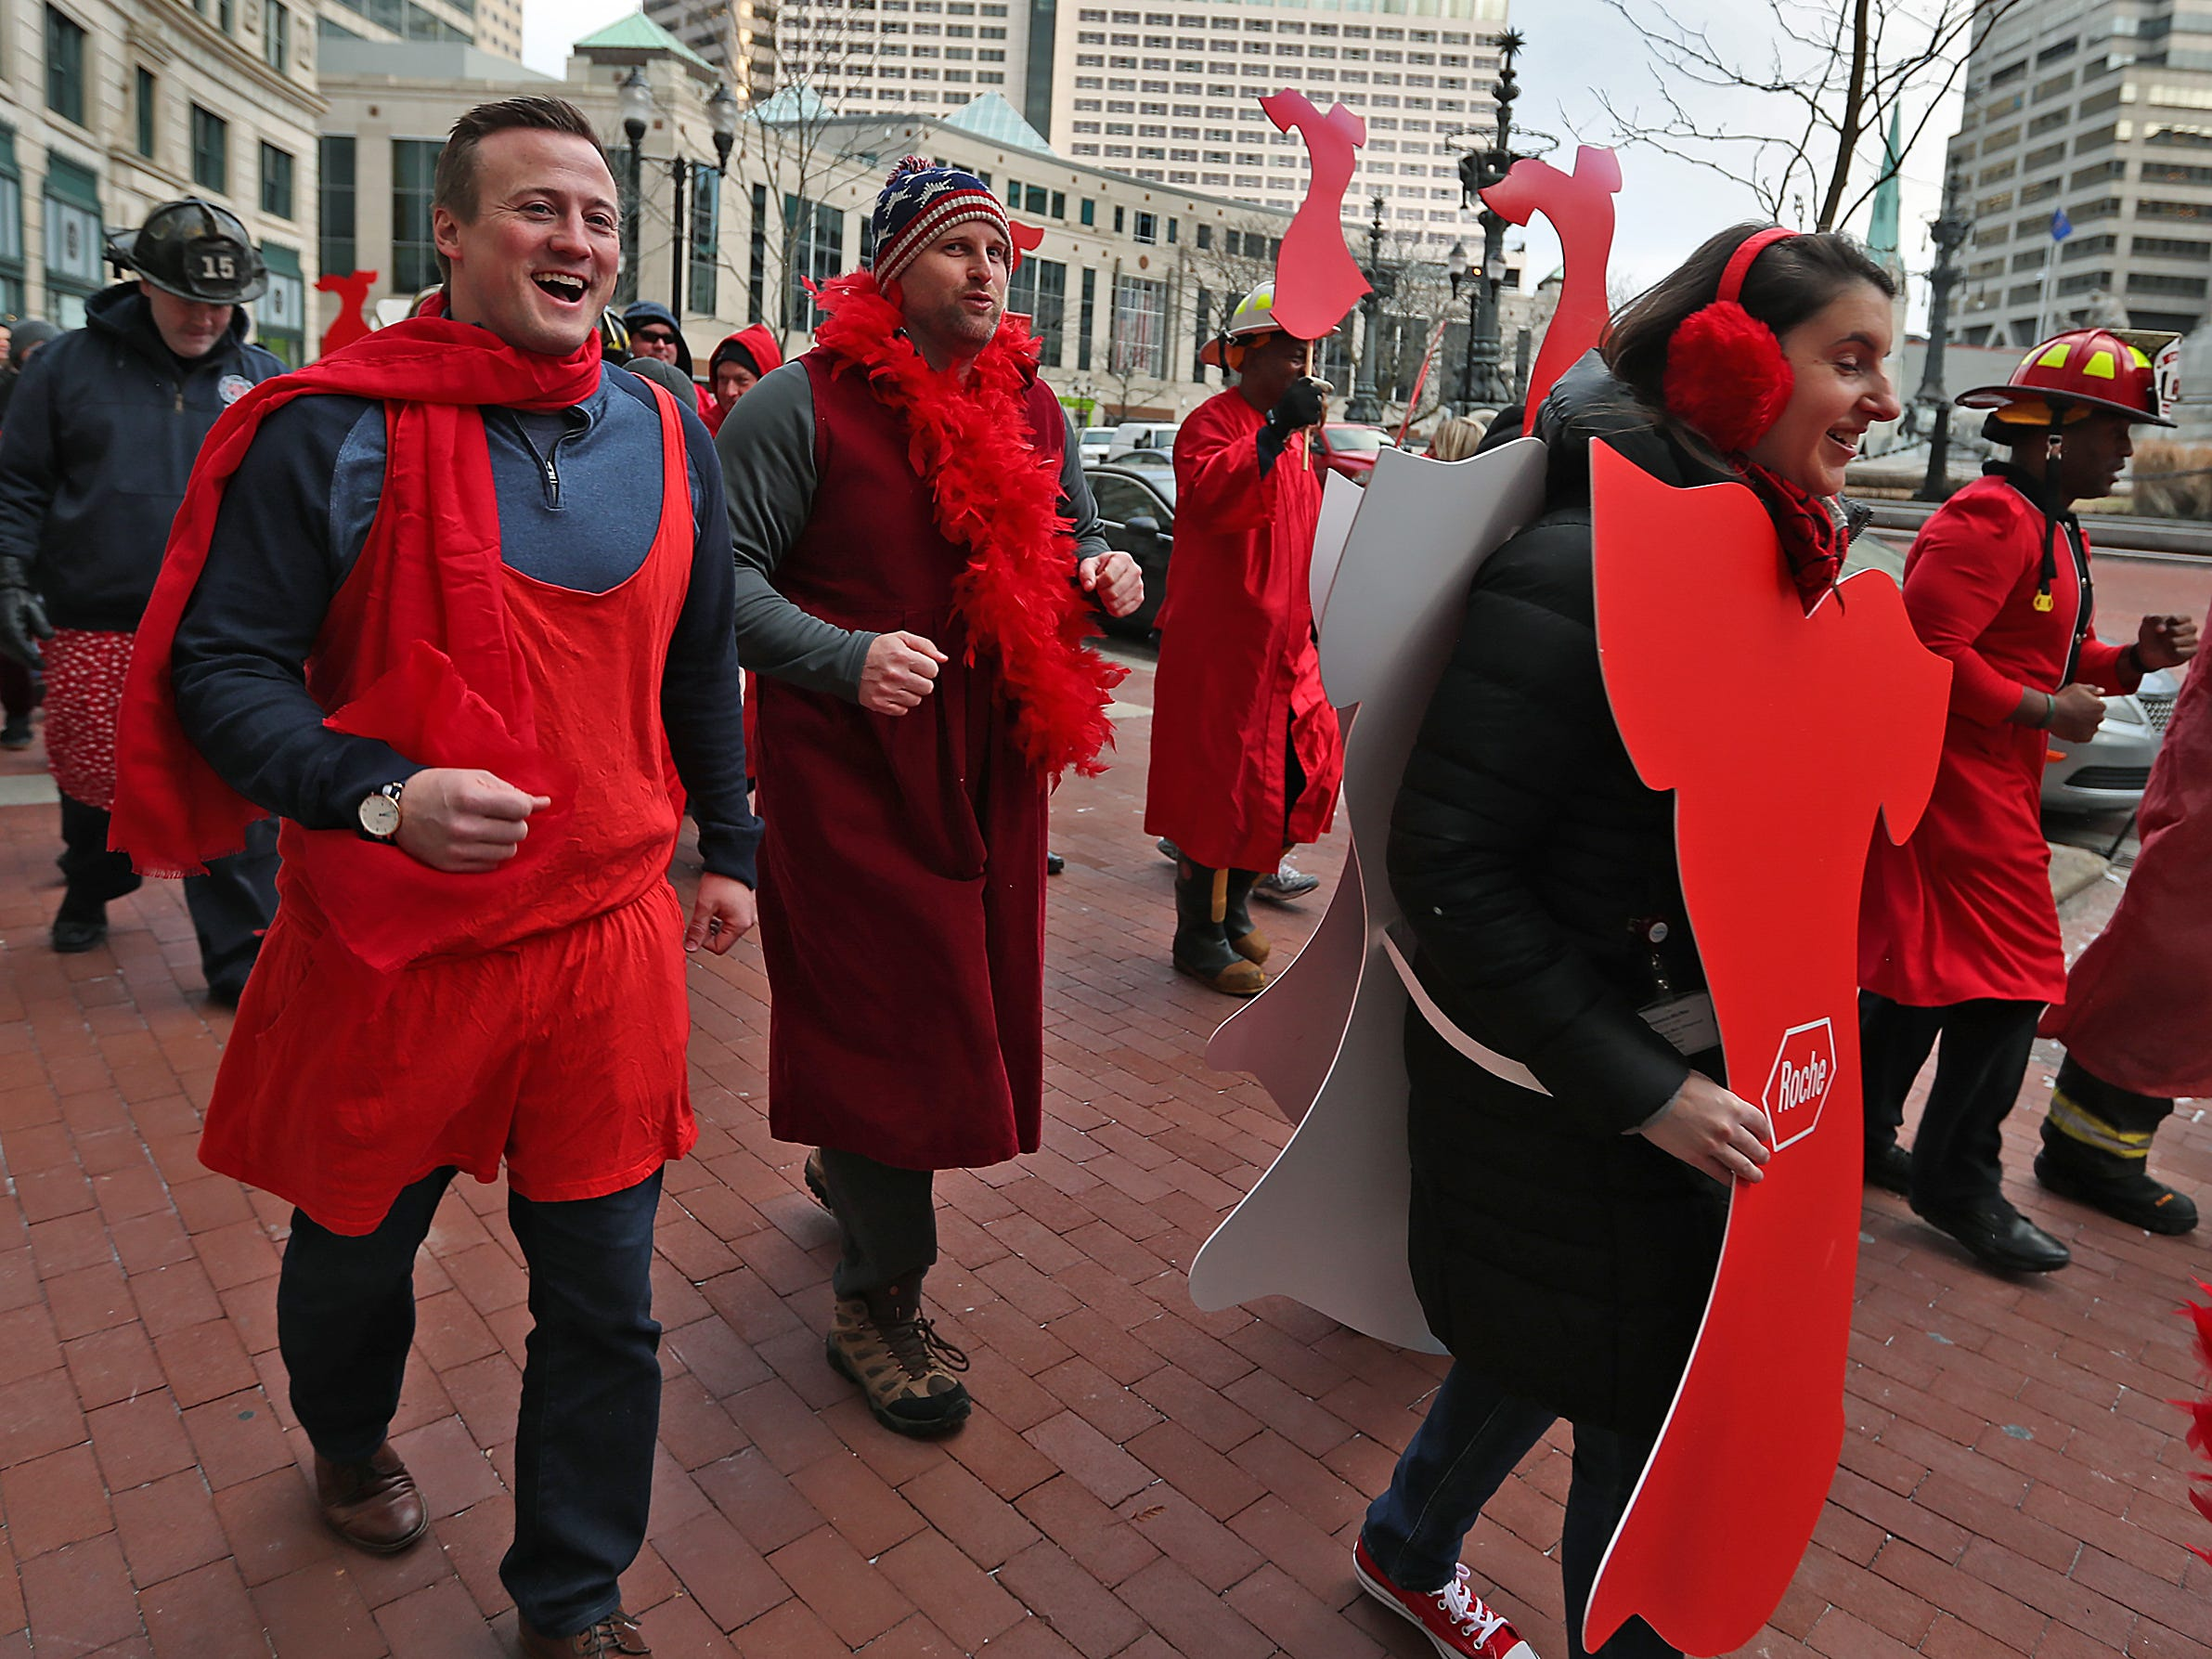 Patrick Triest, left, Bryan Hohne, both with J.D. Byrider, and Kelsey Hobbs, from Roche, join others in red as they walk and dash around Monument Circle for the Red Dress Dash, Friday, Feb. 8, 2019.  The American Heart Association put on the seventh annual event to support women's heart health.  The event raises awareness for the American Heart Association's Go Red For Women movement.  Heart disease is the leading cause of death among women.